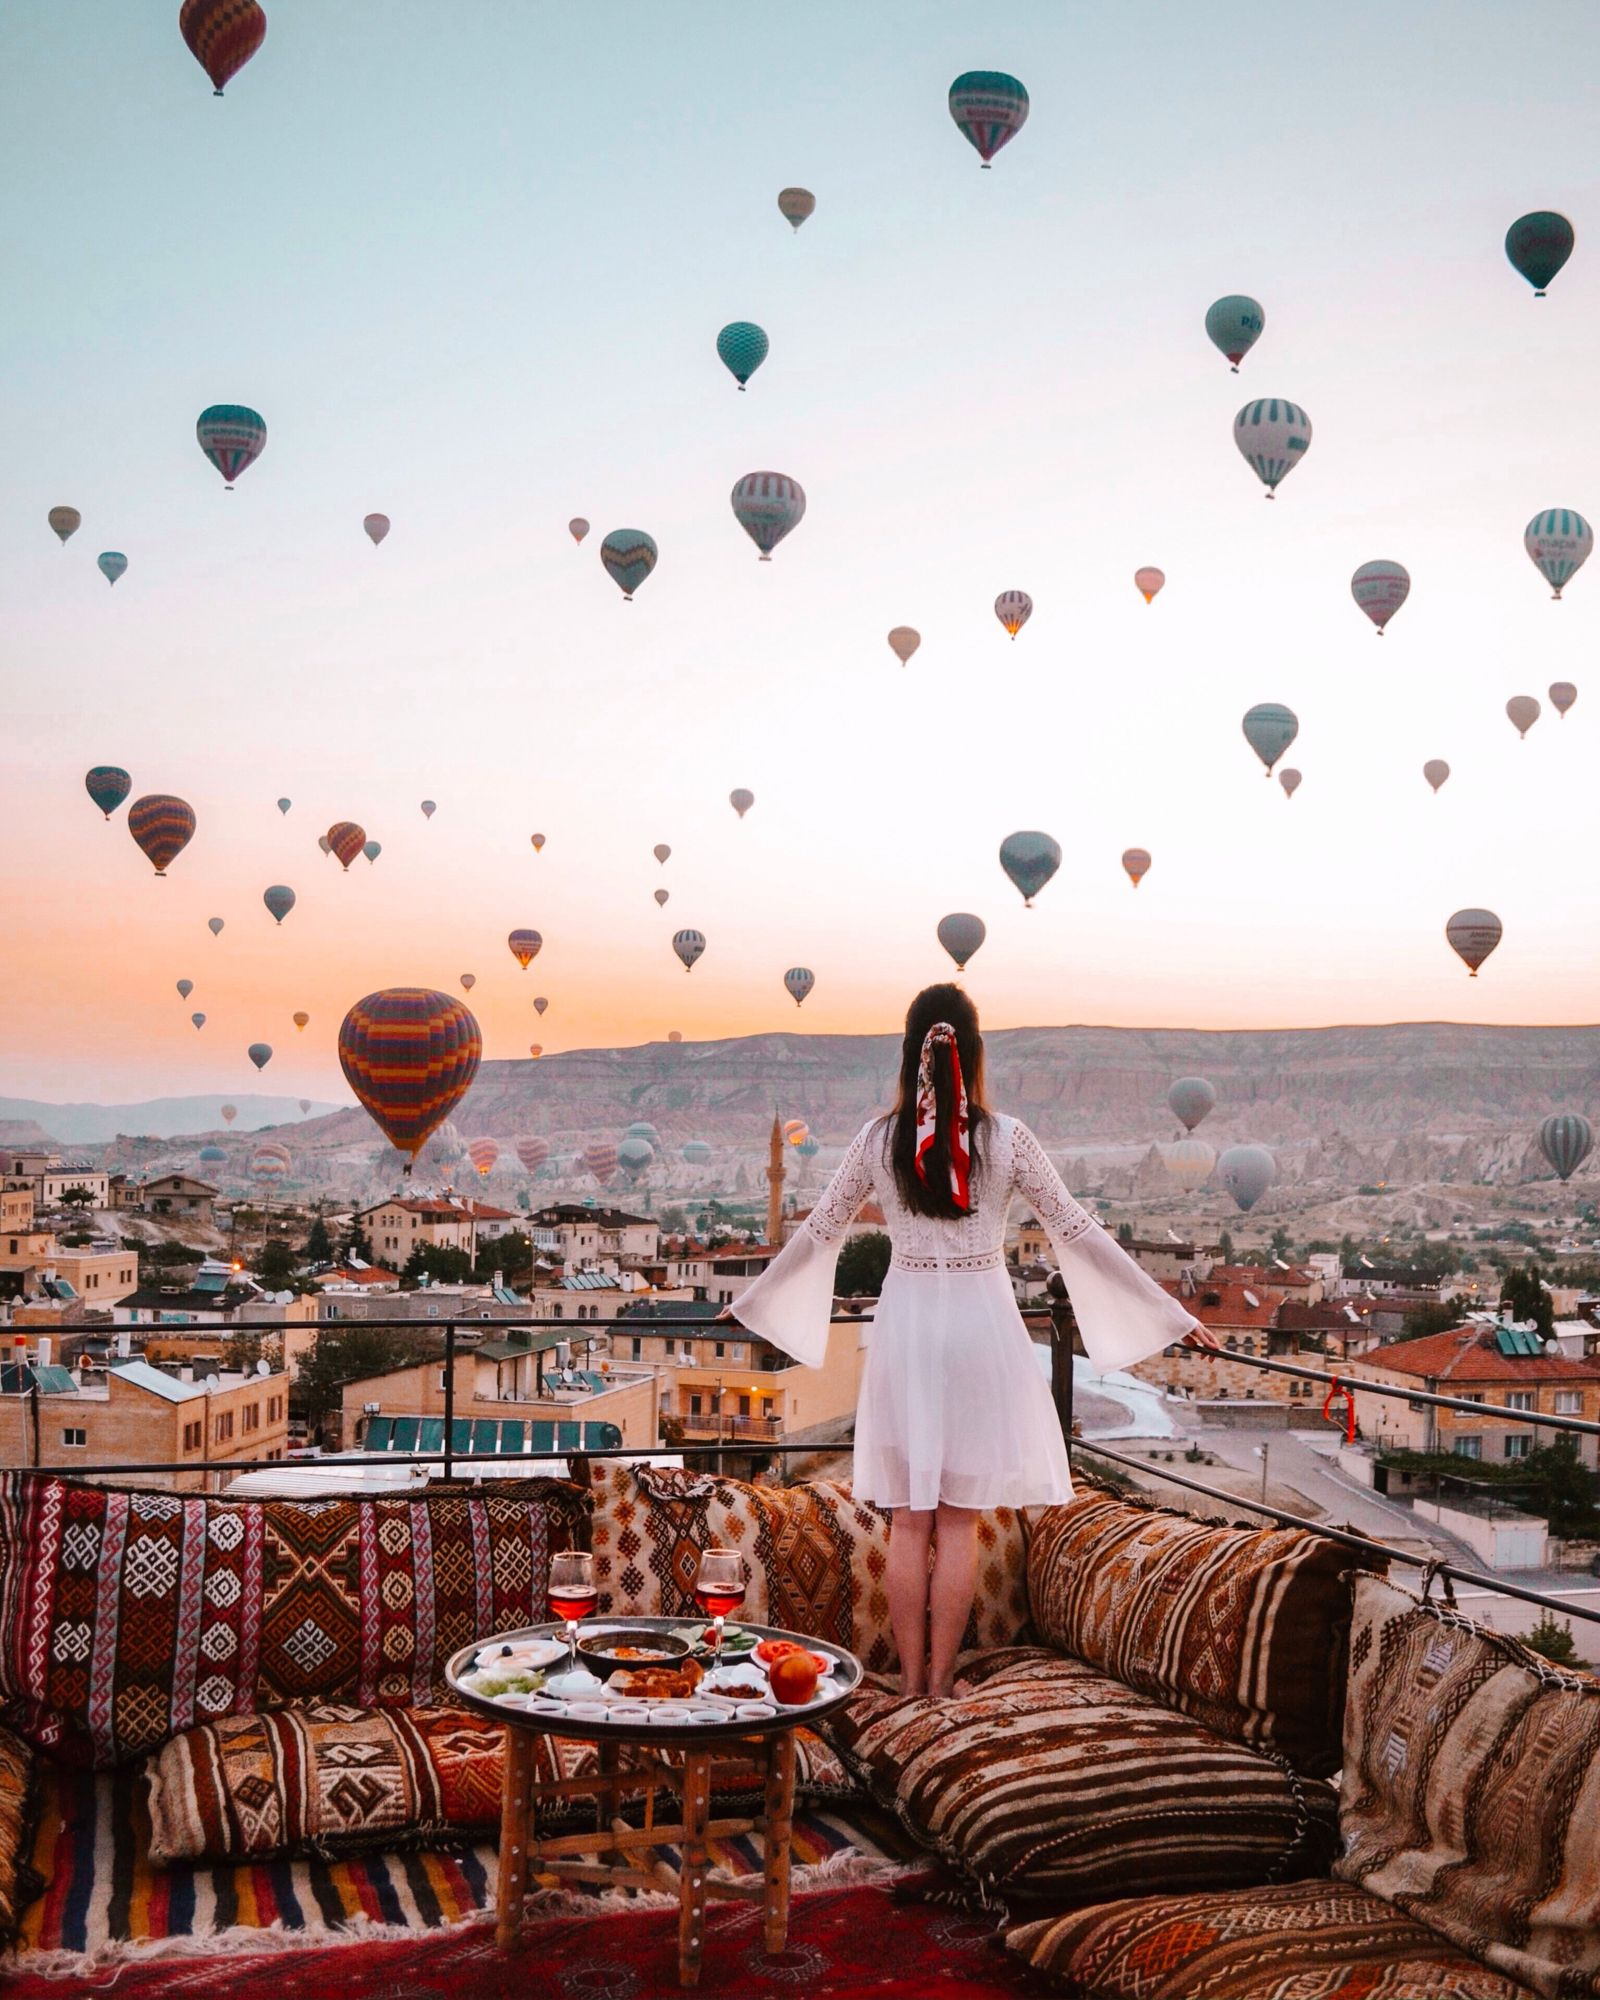 Cappadocia, Turkey Travel & Photography Guide